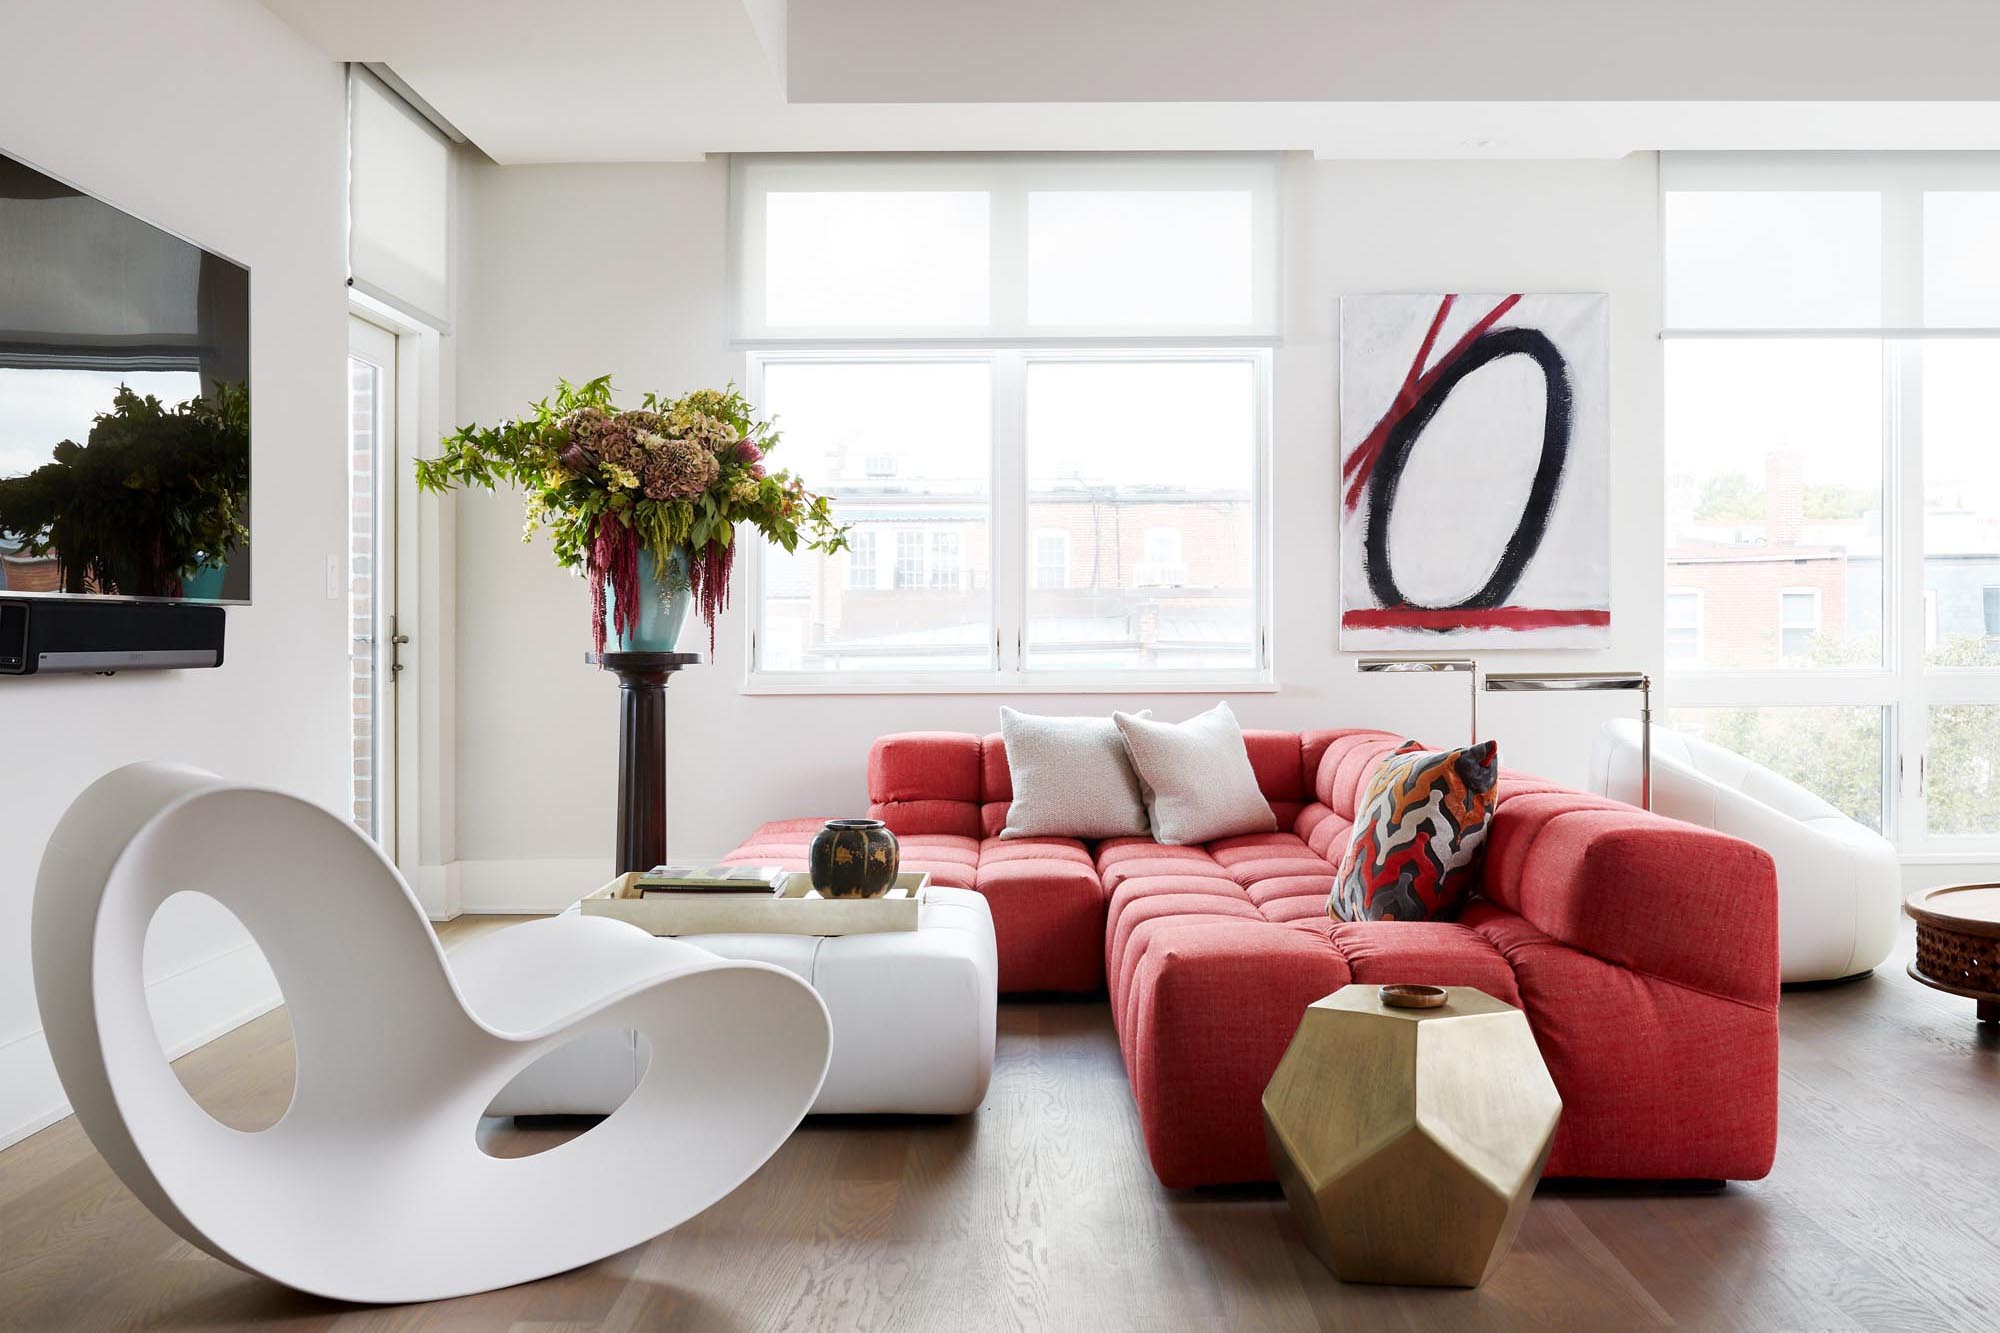 Modern style living room with red sofa and stylish white chair